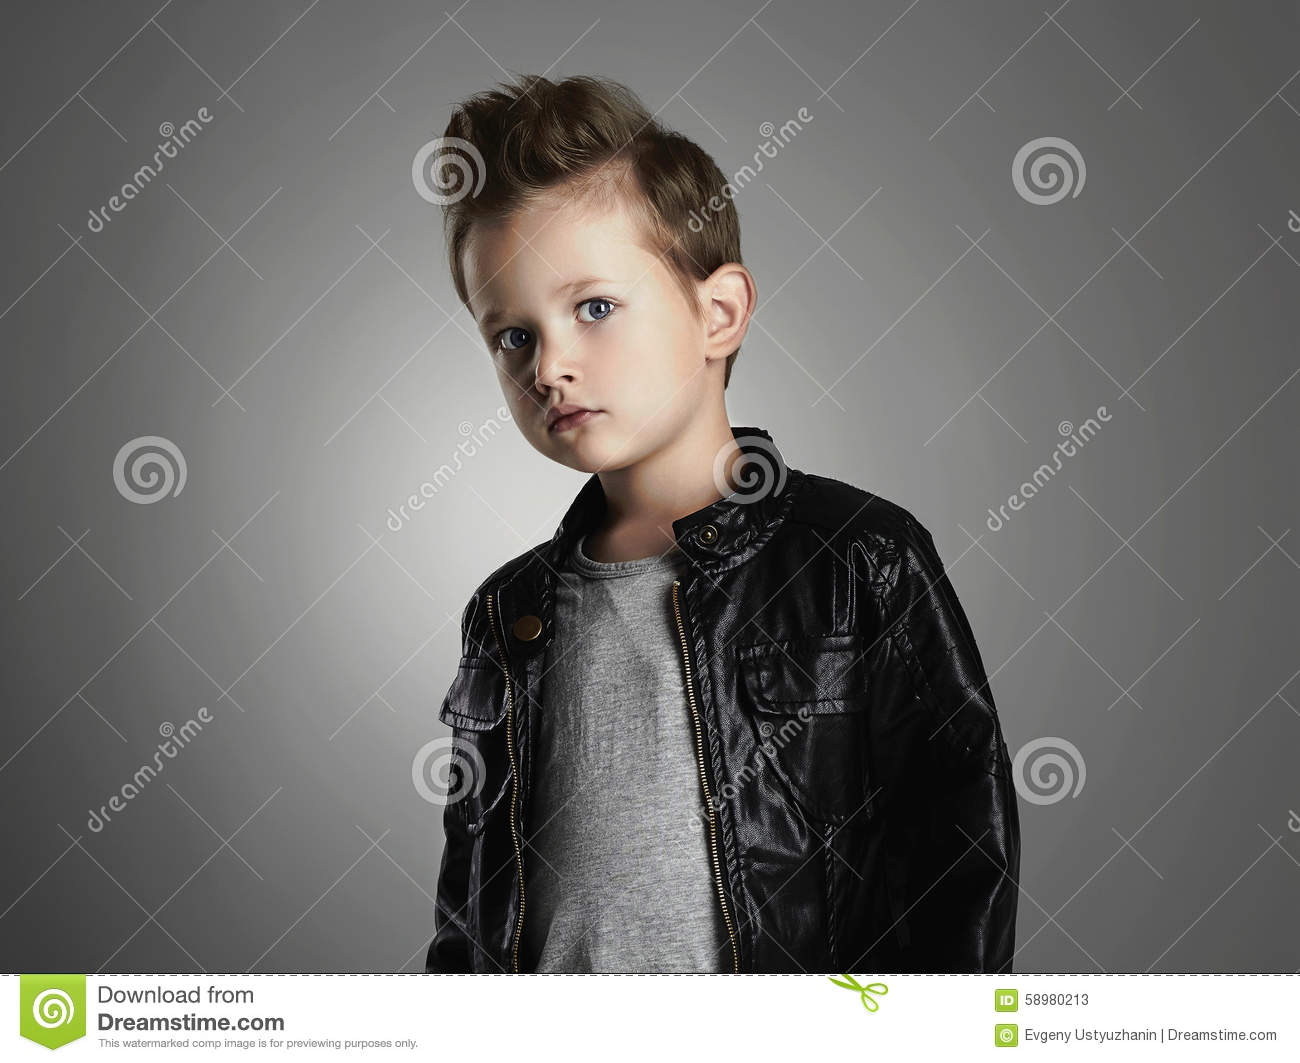 gar on beau avec la coiffure la mode enfant la mode dans le manteau en cuir photo stock. Black Bedroom Furniture Sets. Home Design Ideas